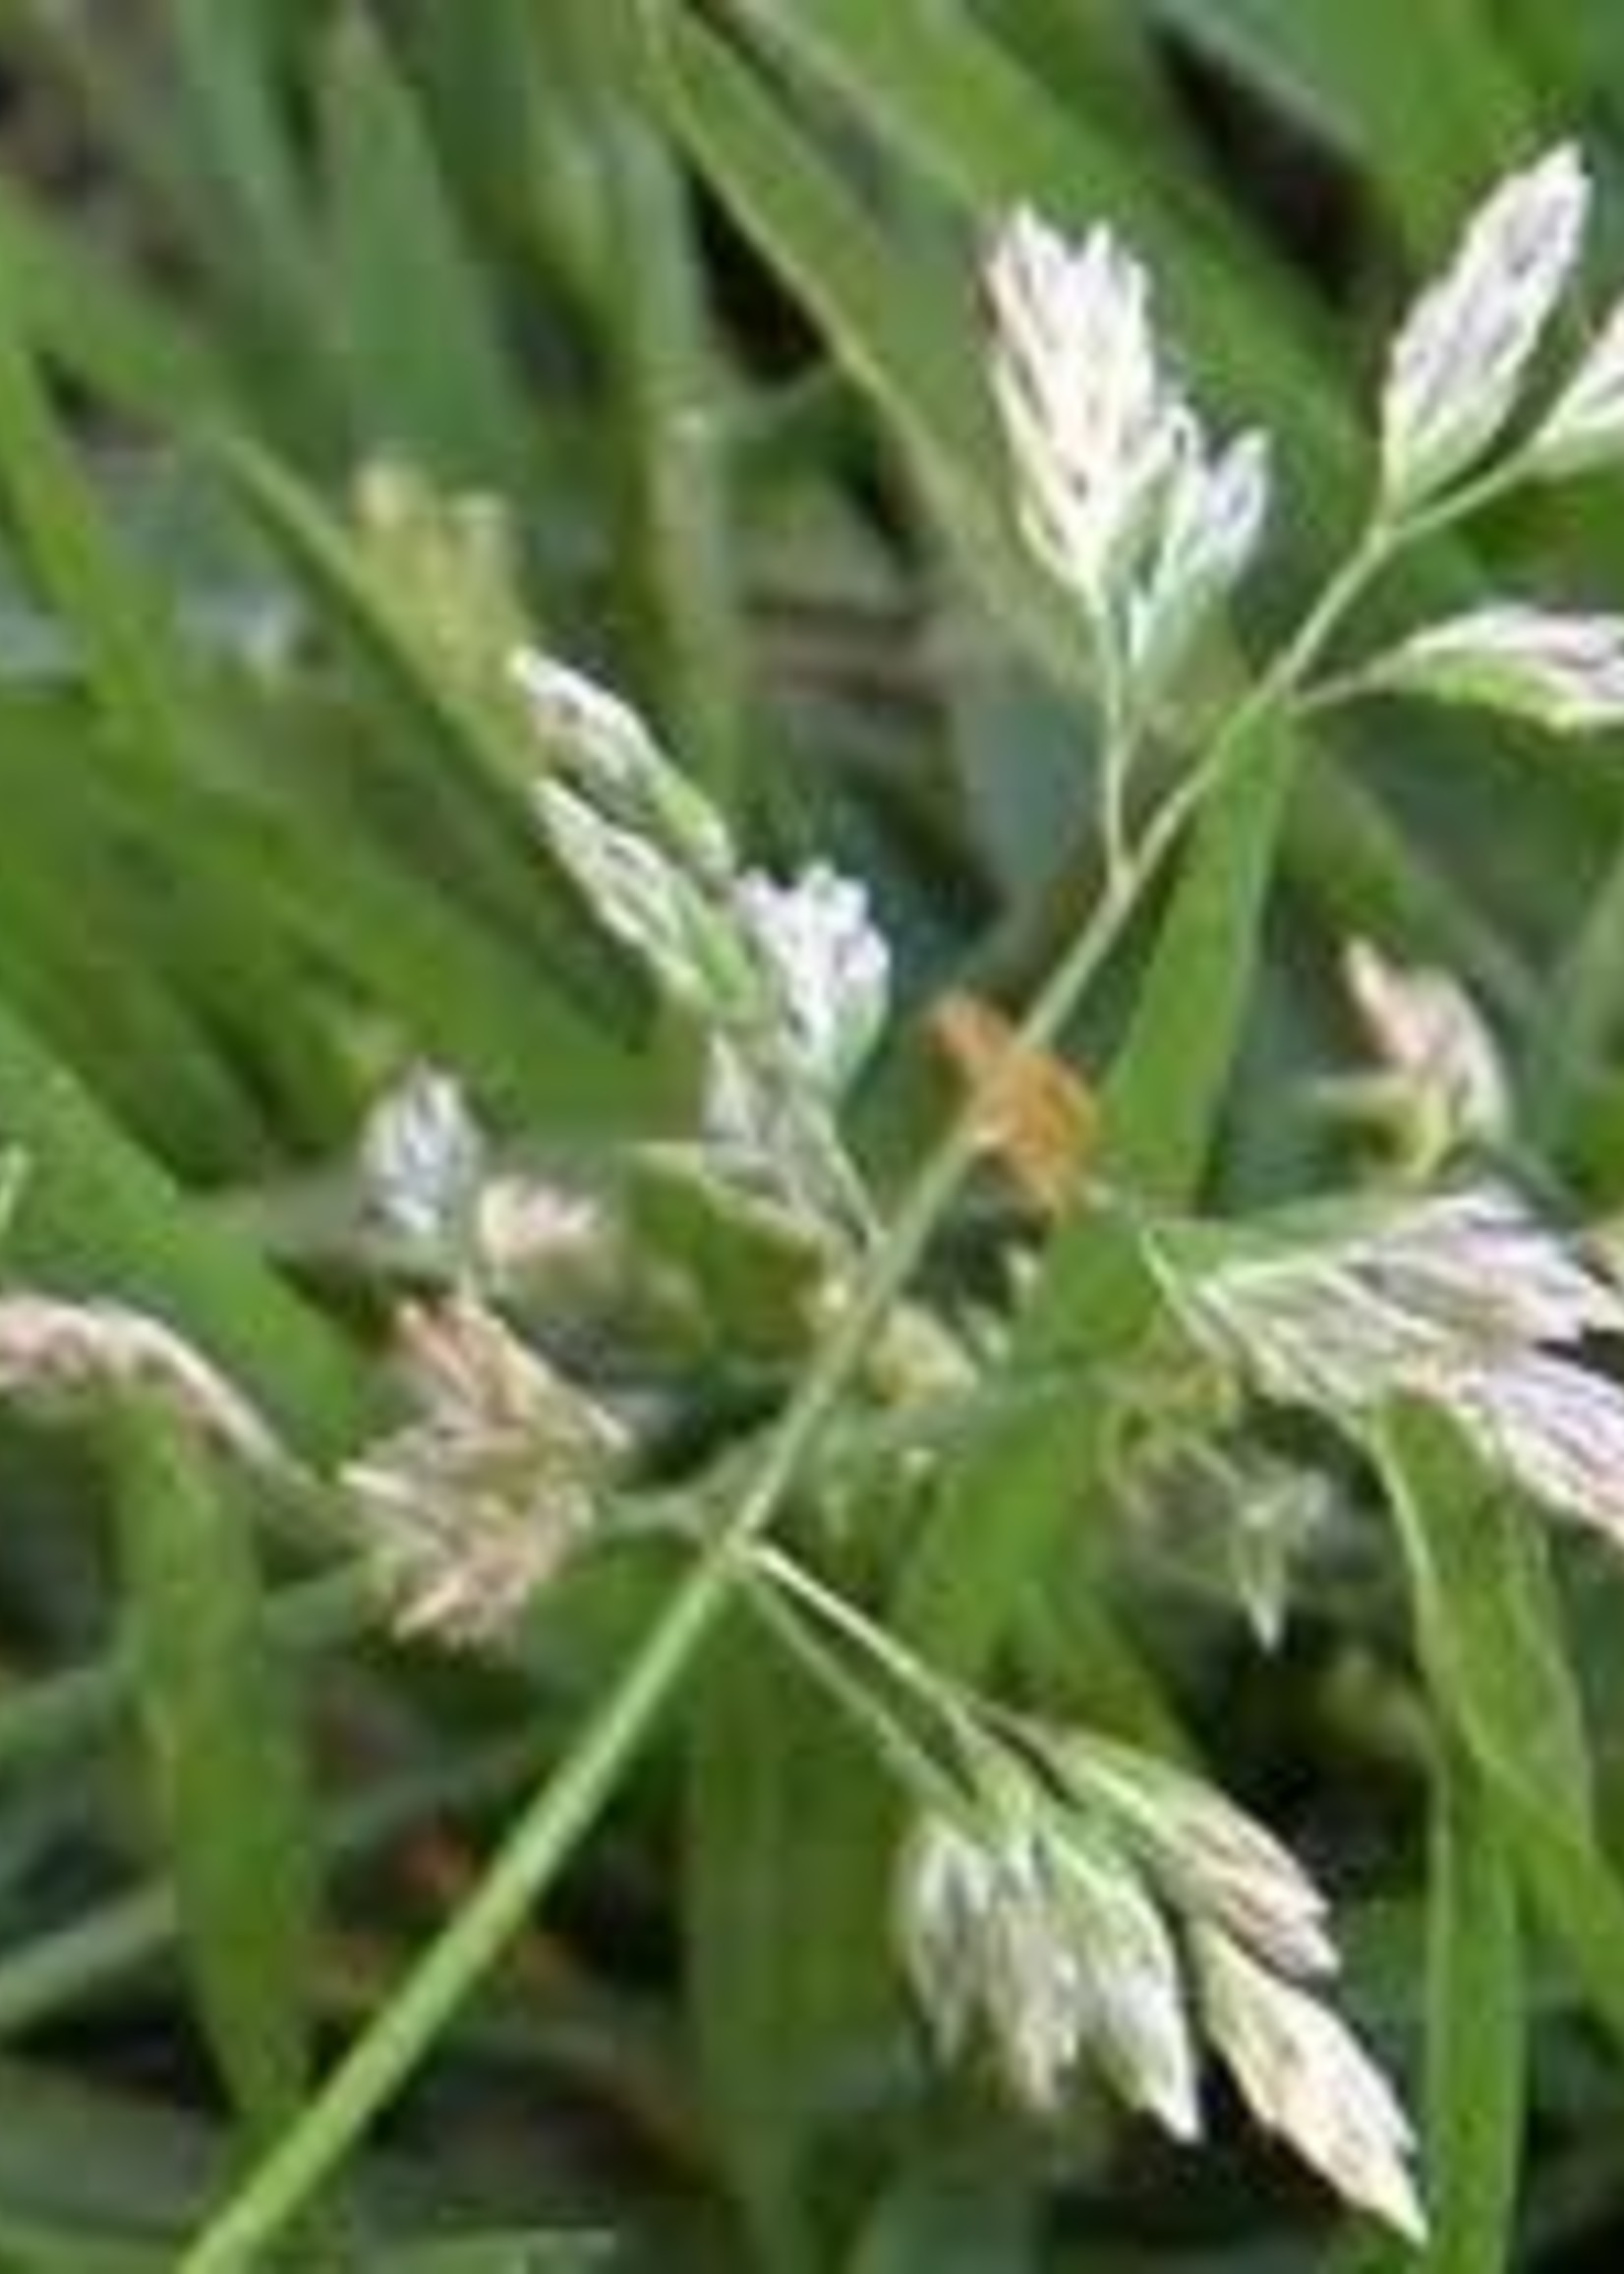 Weed, Poa annua, grassy weed